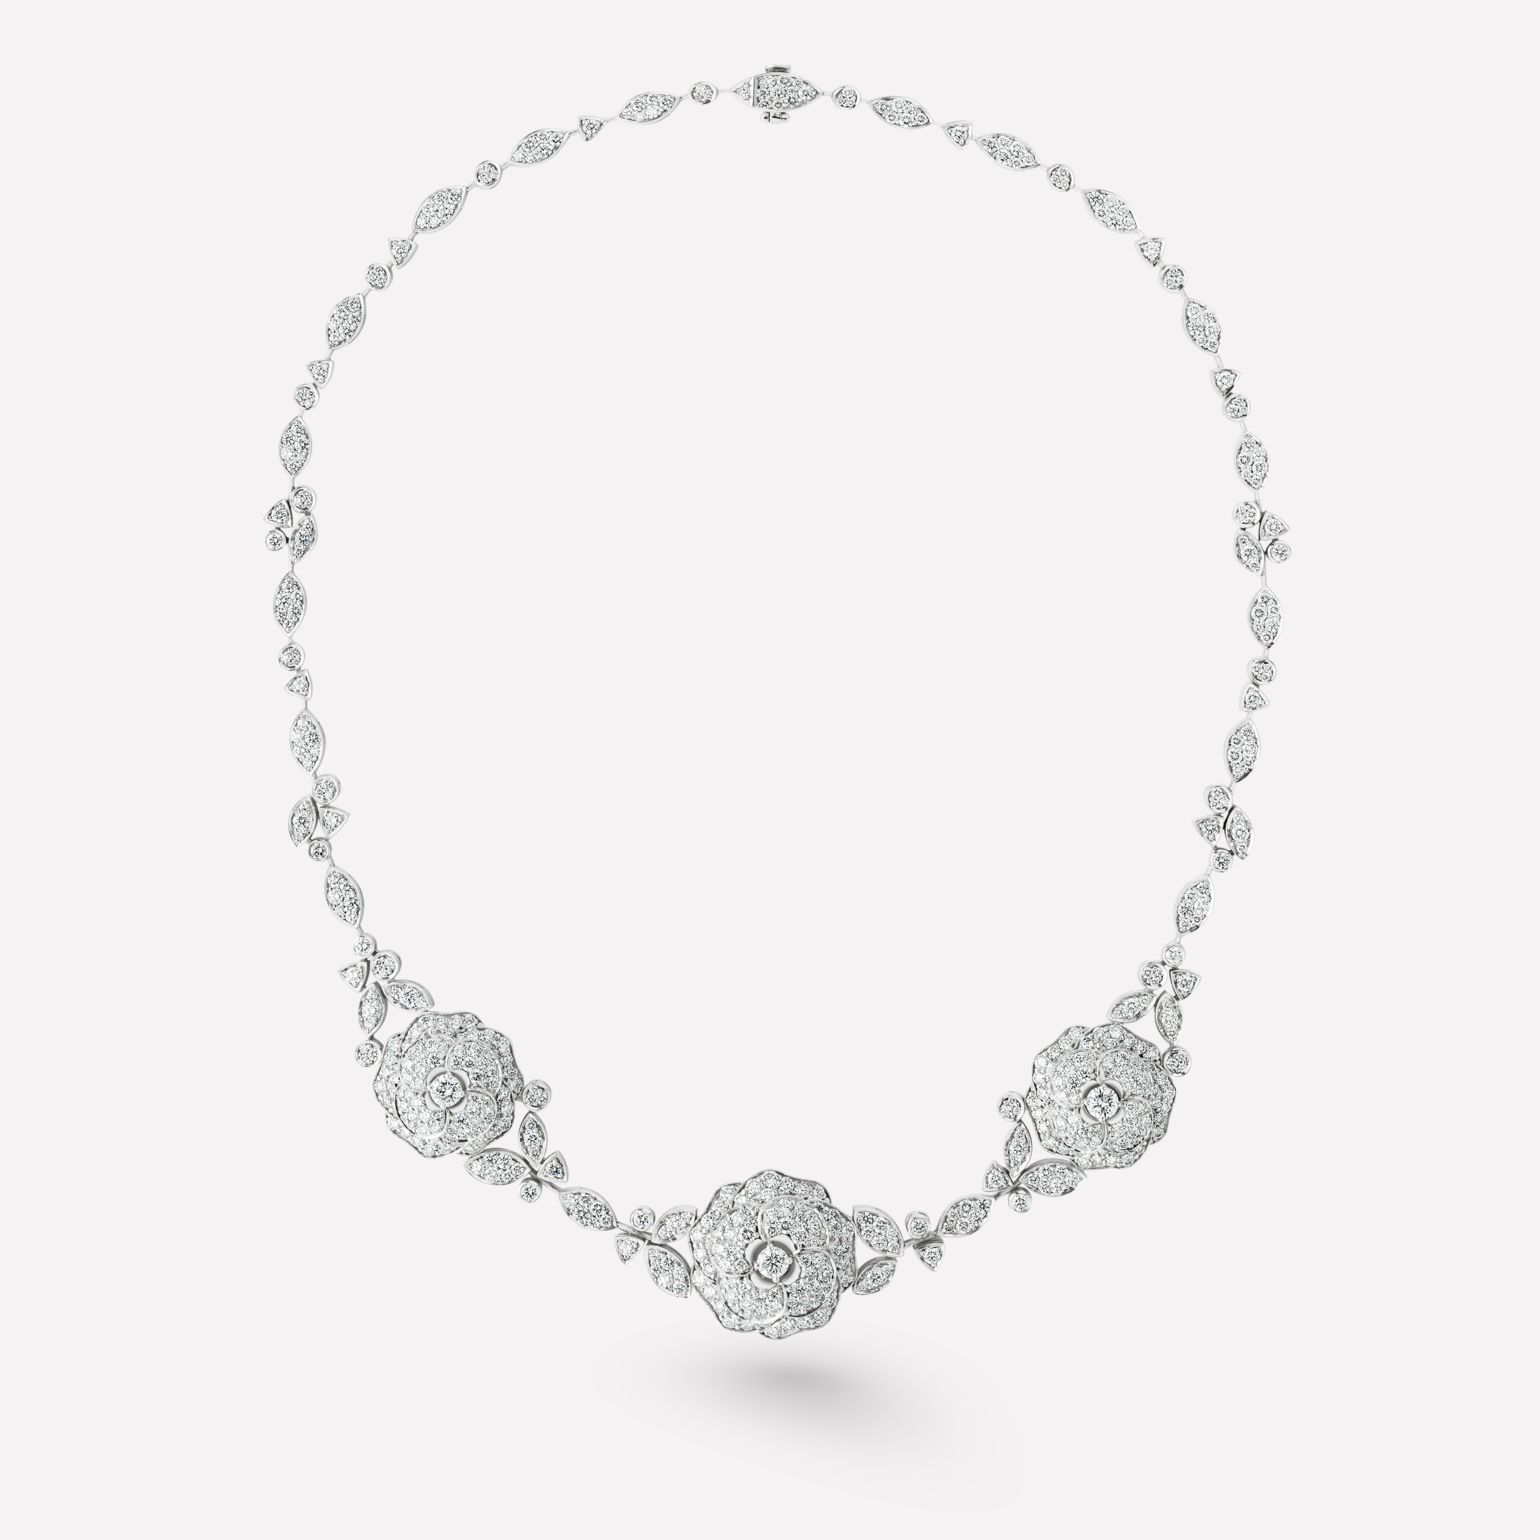 Camélia Necklace Camélia bouquet necklace in 18K white gold, diamonds and central diamond